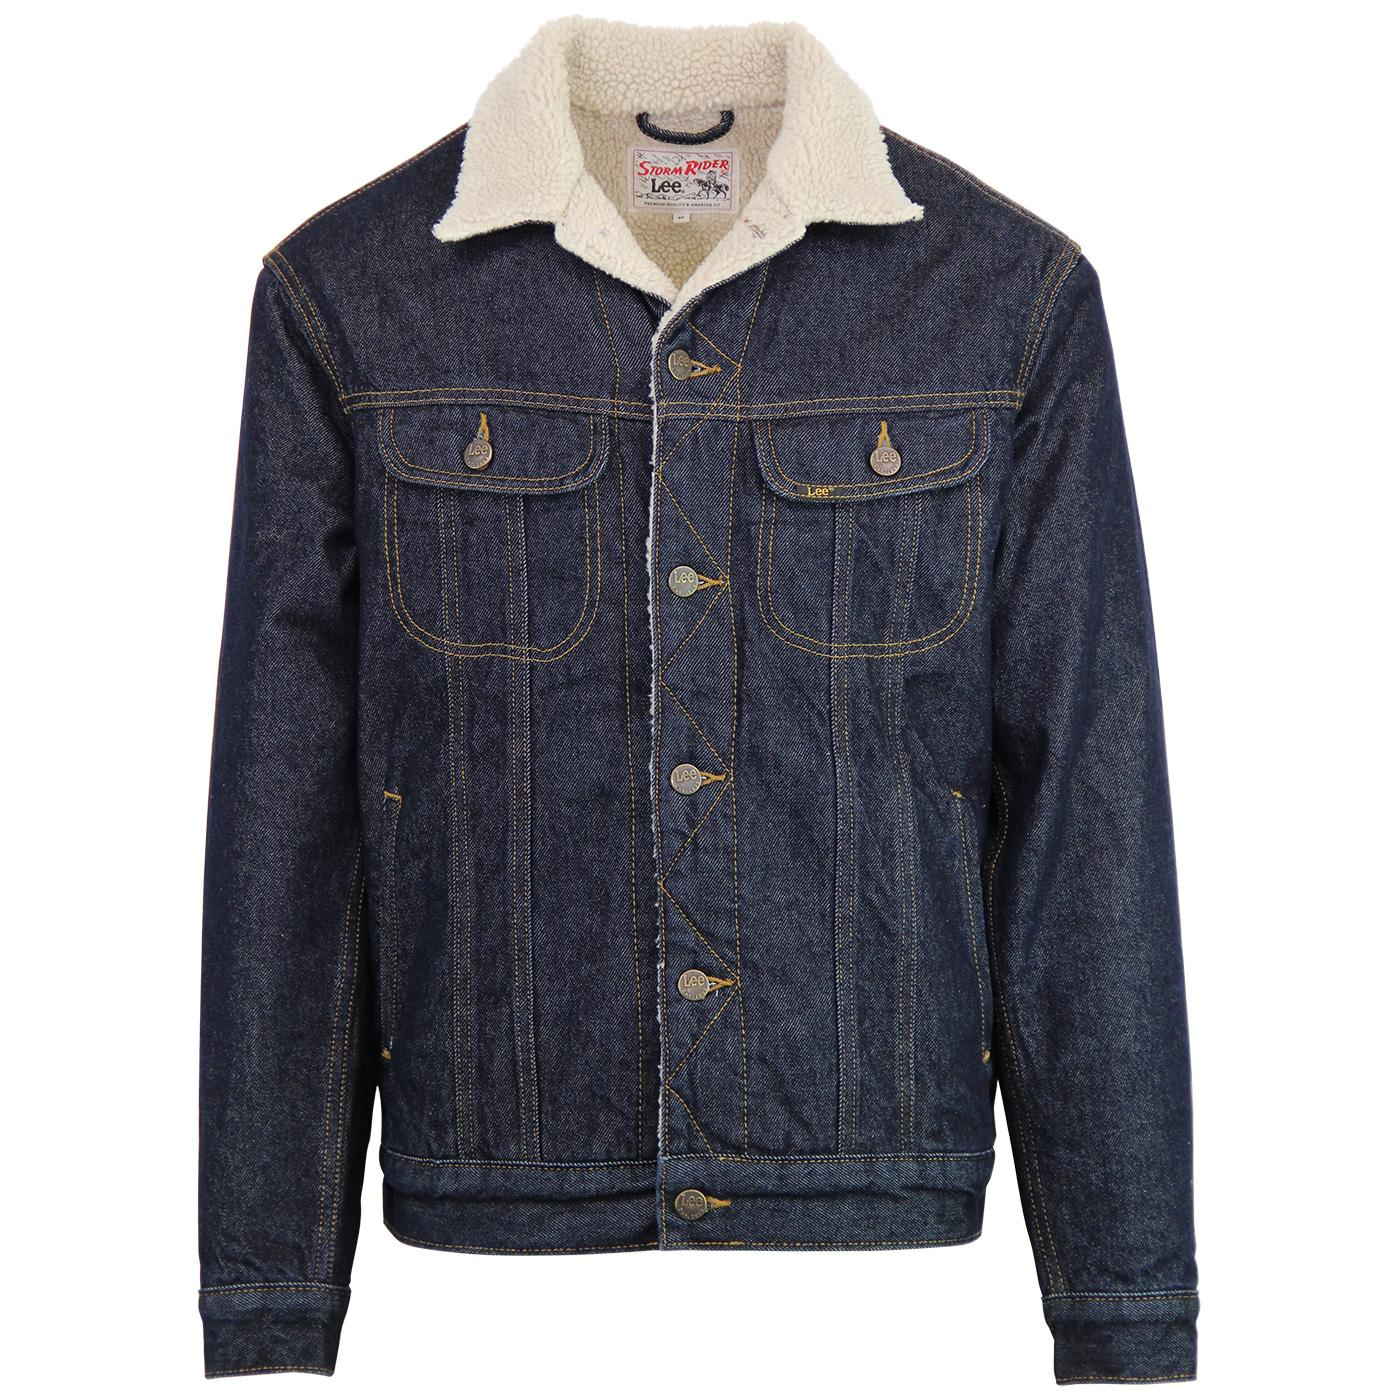 Storm Rider LEE Men's Retro Sherpa Denim Jacket DR